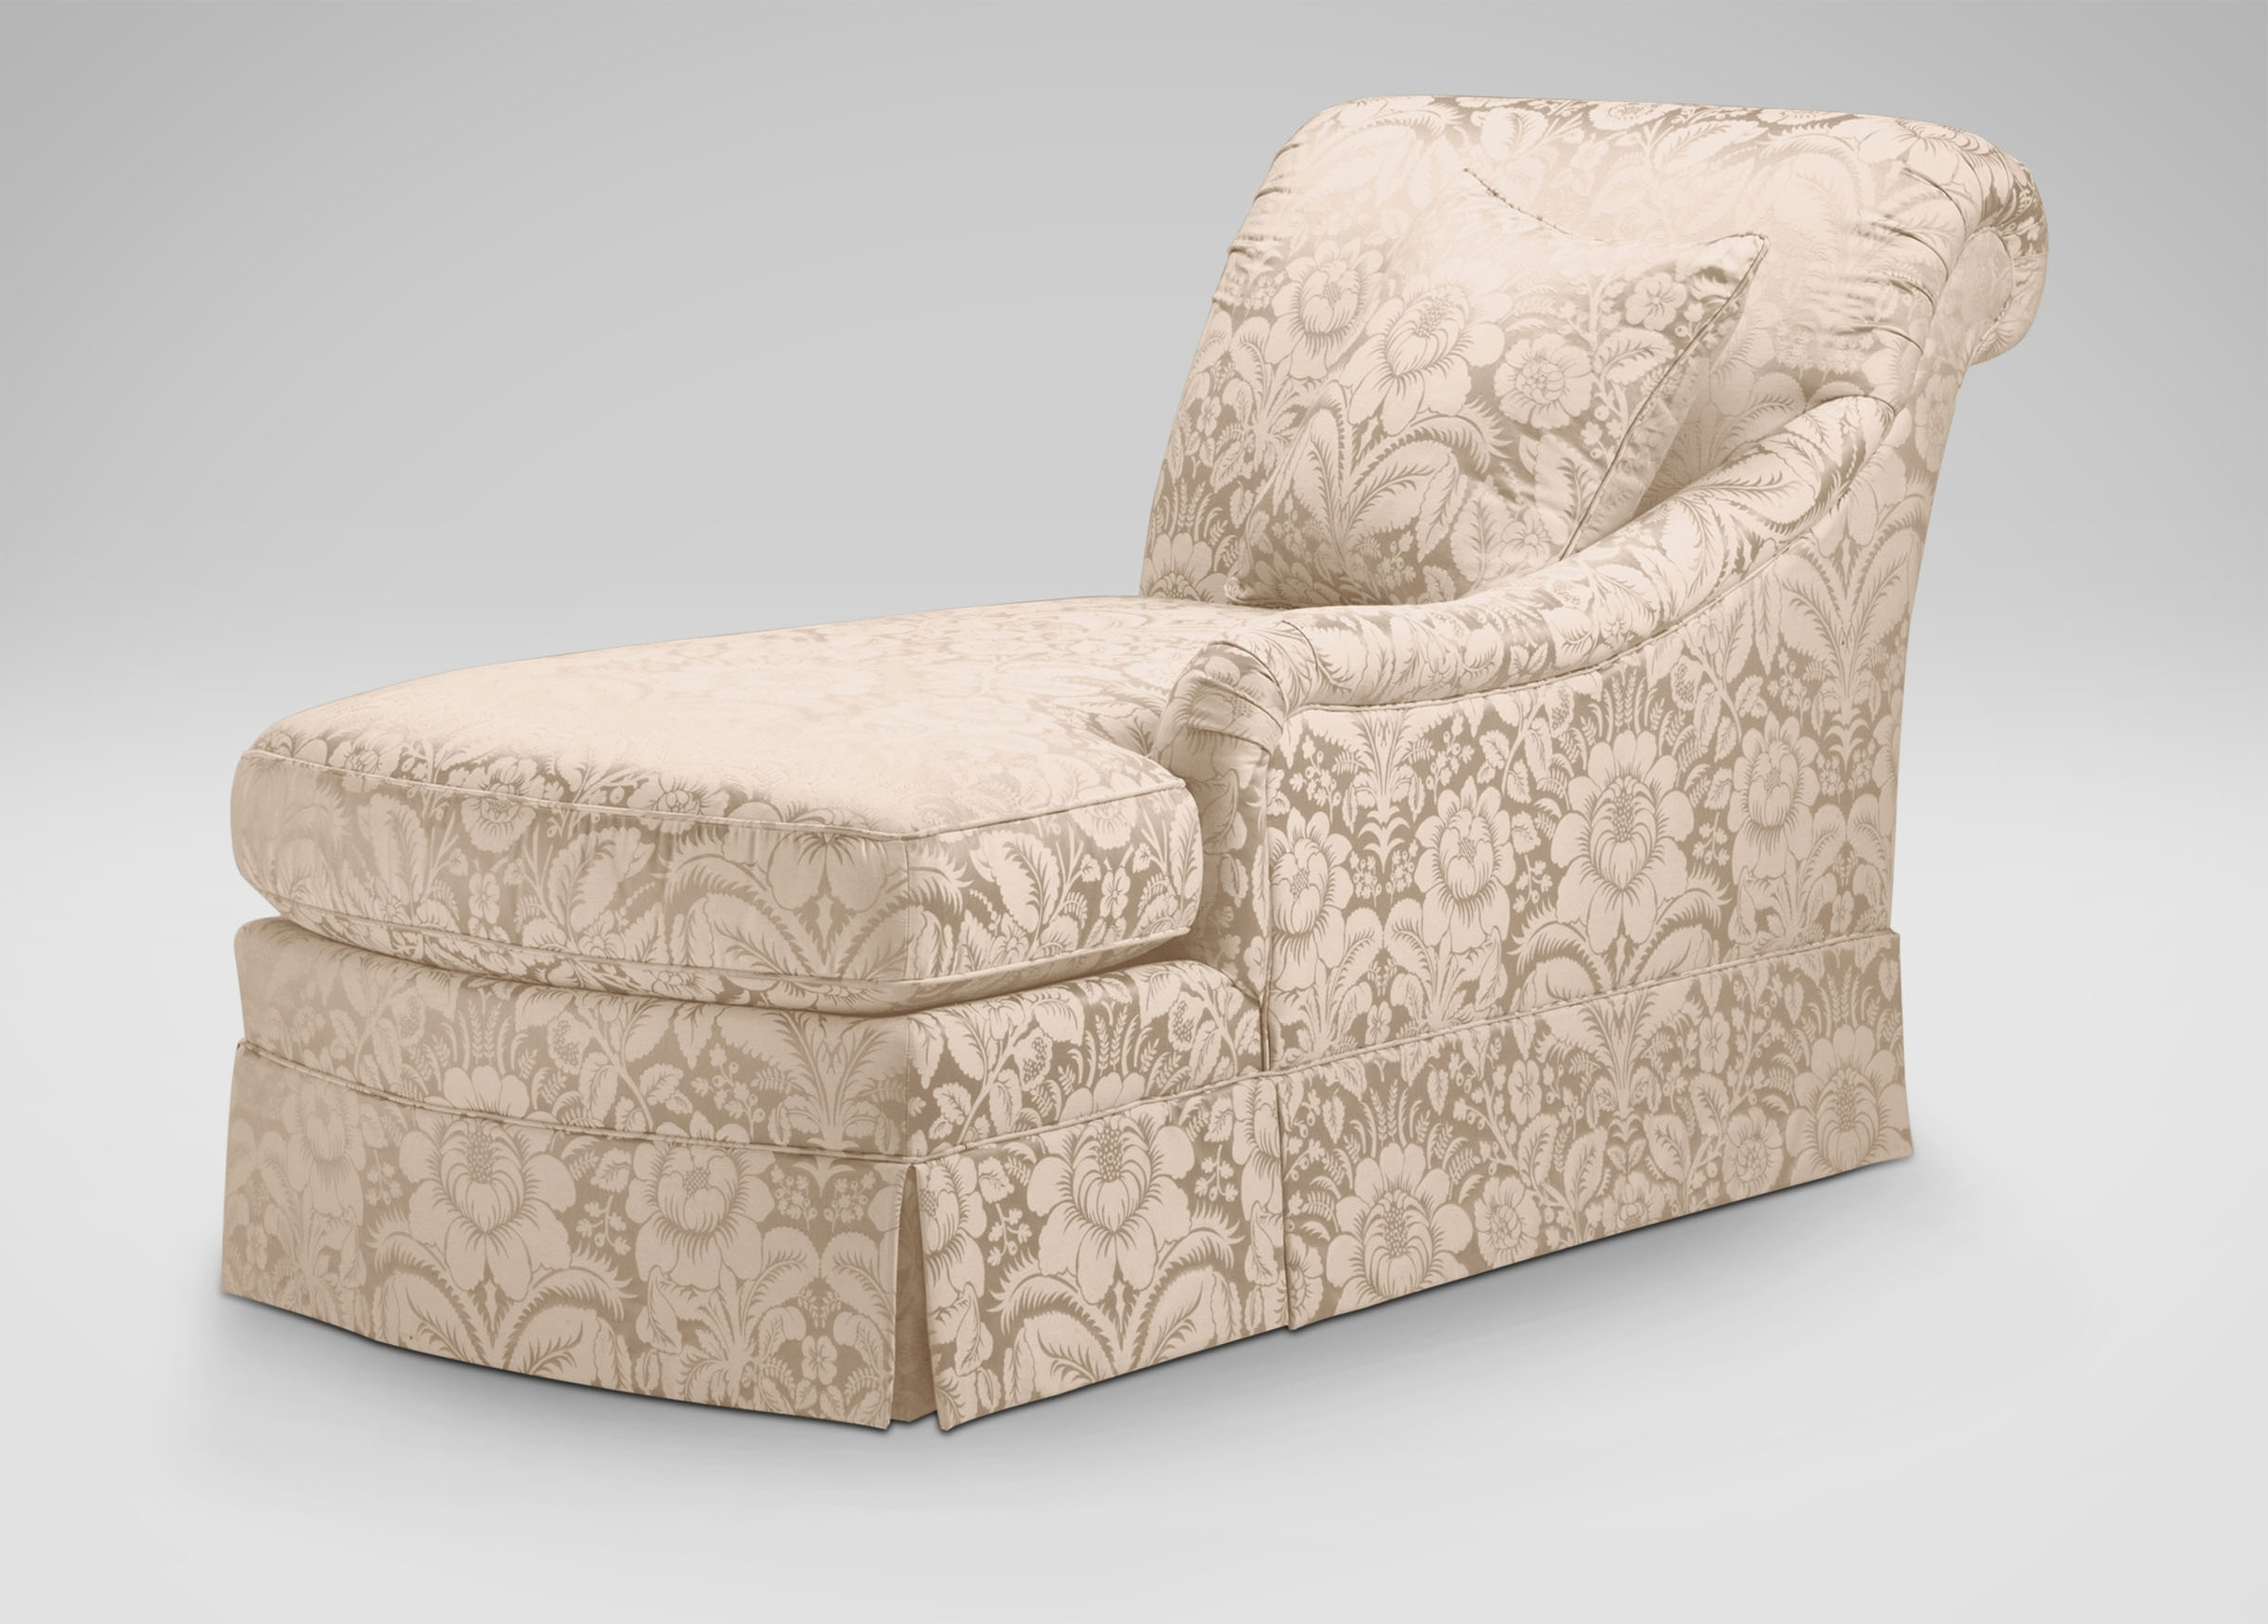 Famous Slipcovers For Chaise Lounge Pertaining To Chaise Lounge Slipcovers – Slipcovers For Chaise Lounge Chairs (View 8 of 15)